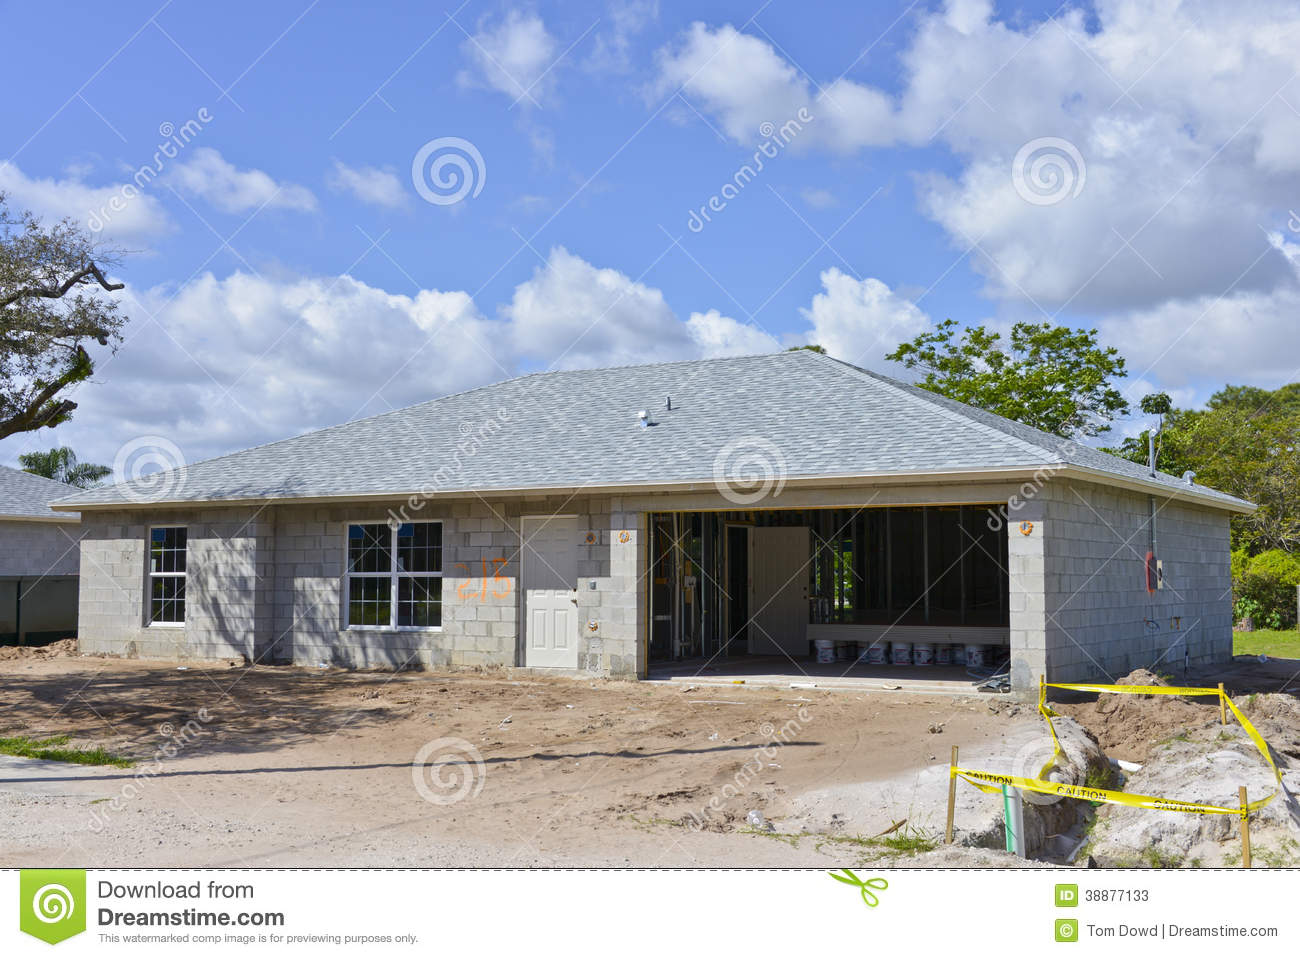 Family house under construction stock image image of for Cinder block house construction